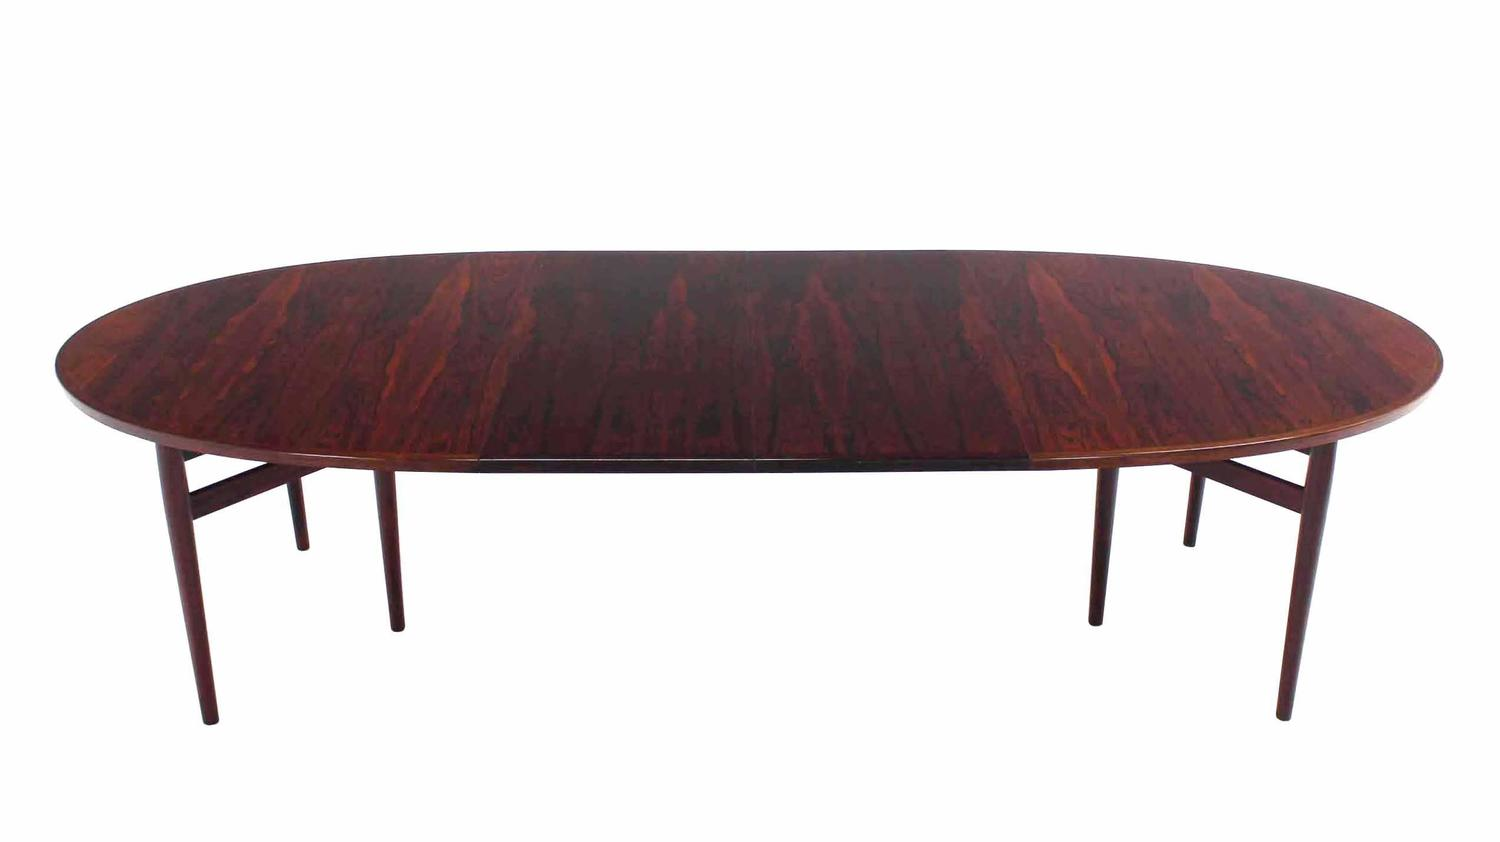 nice oval danish modern rosewood dining table with 2 x 19 leaves